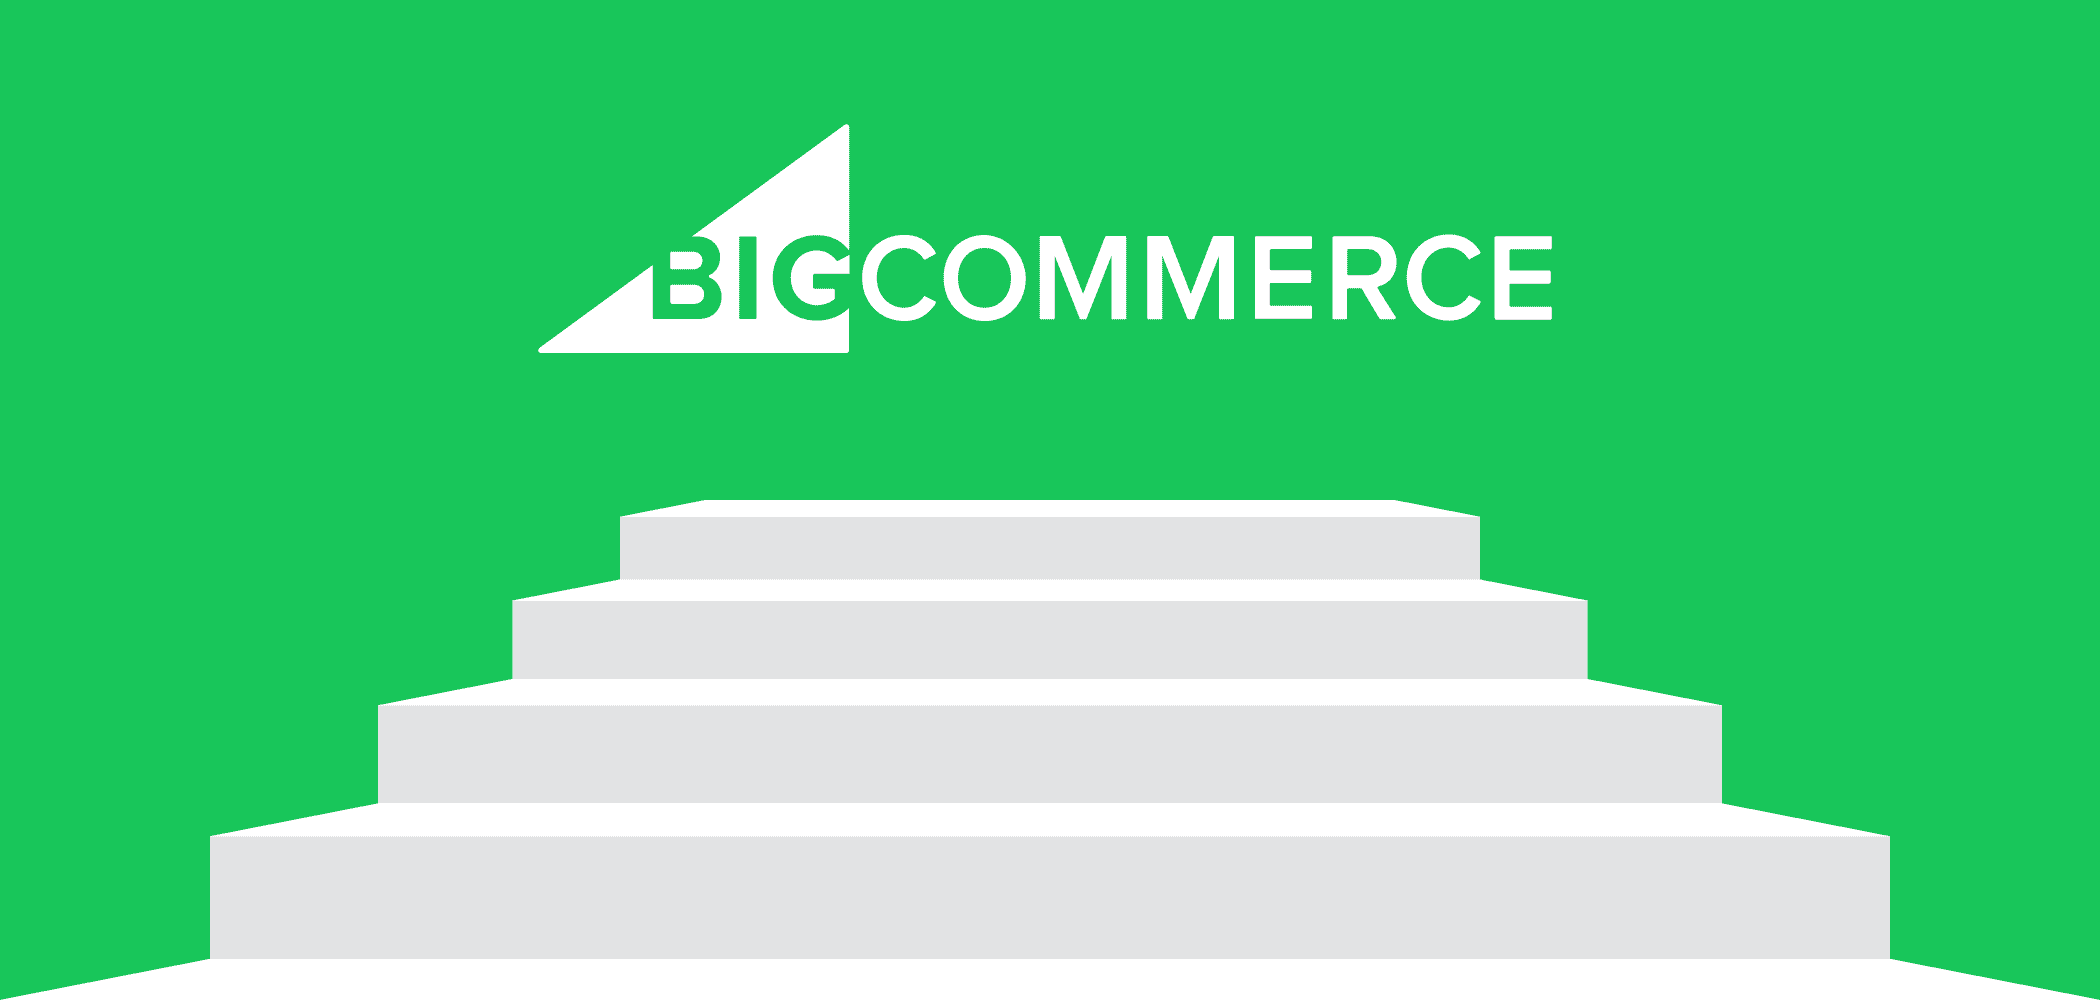 Move big with BigCommerce